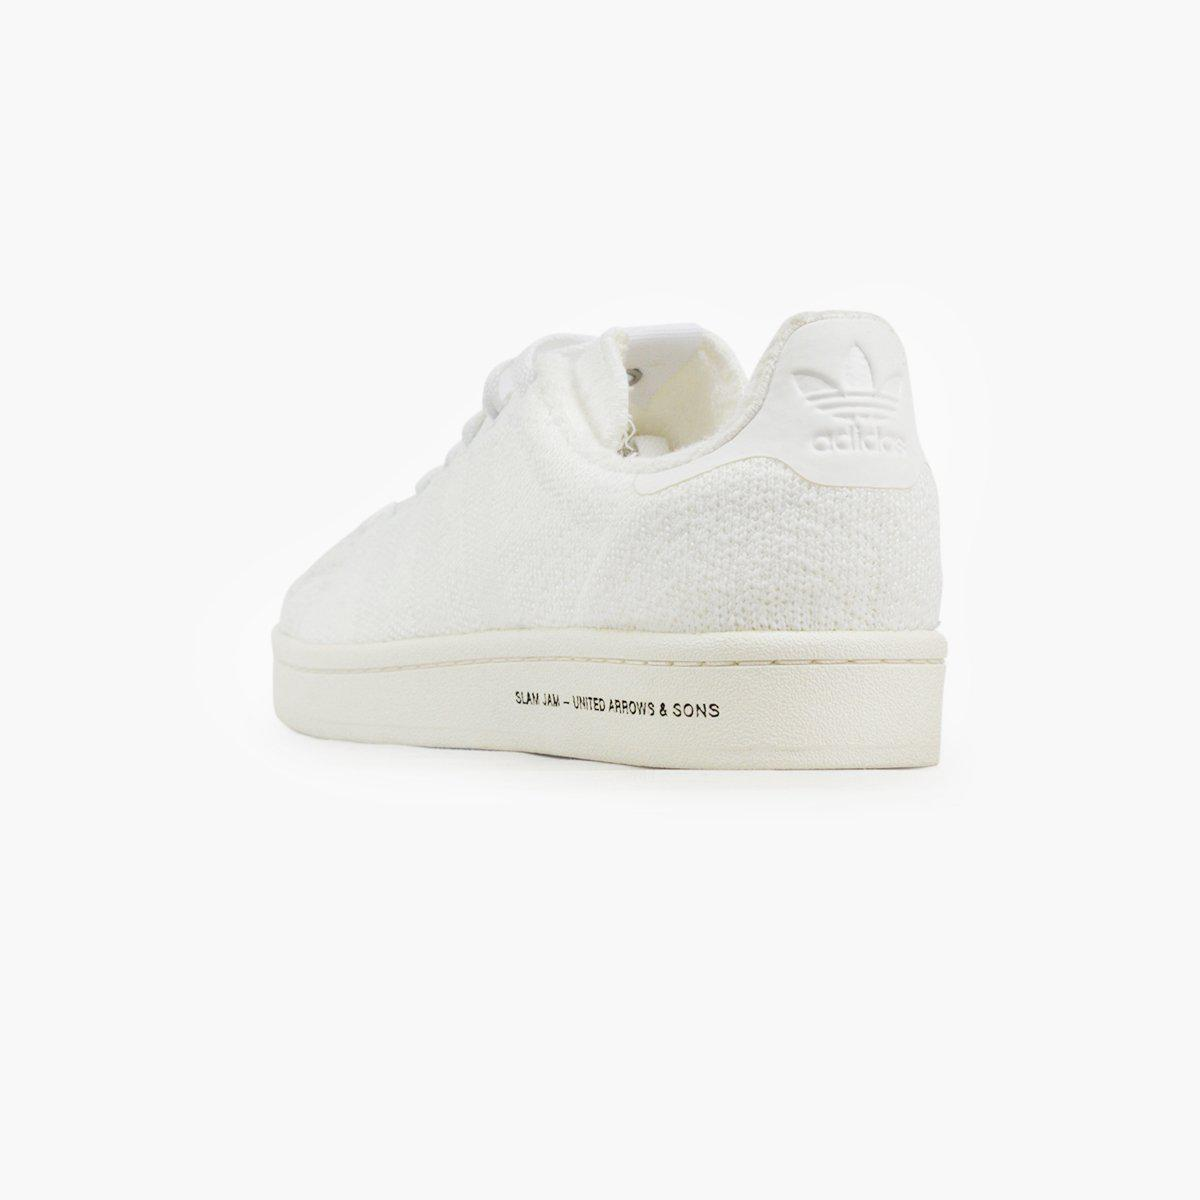 low priced 9740e 6724b Adidas Originals - White X United Arrows X Slam Jam Campus for Men - Lyst.  View fullscreen